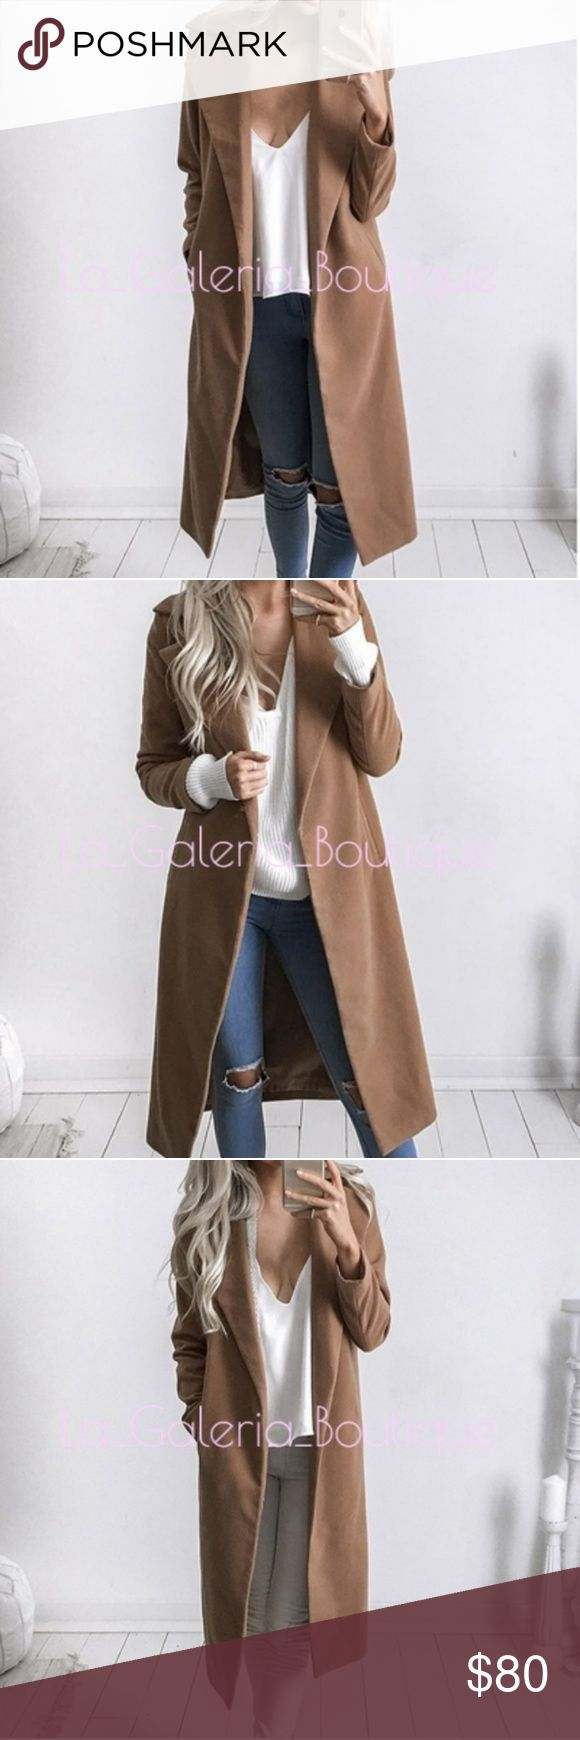 🆕️CAMEL TAN LONG TRENCH COAT DUSTER JACKET 🆕️CAMEL TAN TRENCH COAT DUSTER JACKET  COLOR: CAMEL MATERIAL: Polyester 100% BRAND NEW   High quality, sexy, stylish and comfortable. It is very popular and sexy design, you will love it! Runs small so, Please go up a size! Manual measurement, There is 2-3% difference according to manual measurement. please check the measurement chart carefully before you buy the item. Please note that slight color difference should be acceptable due to the light…